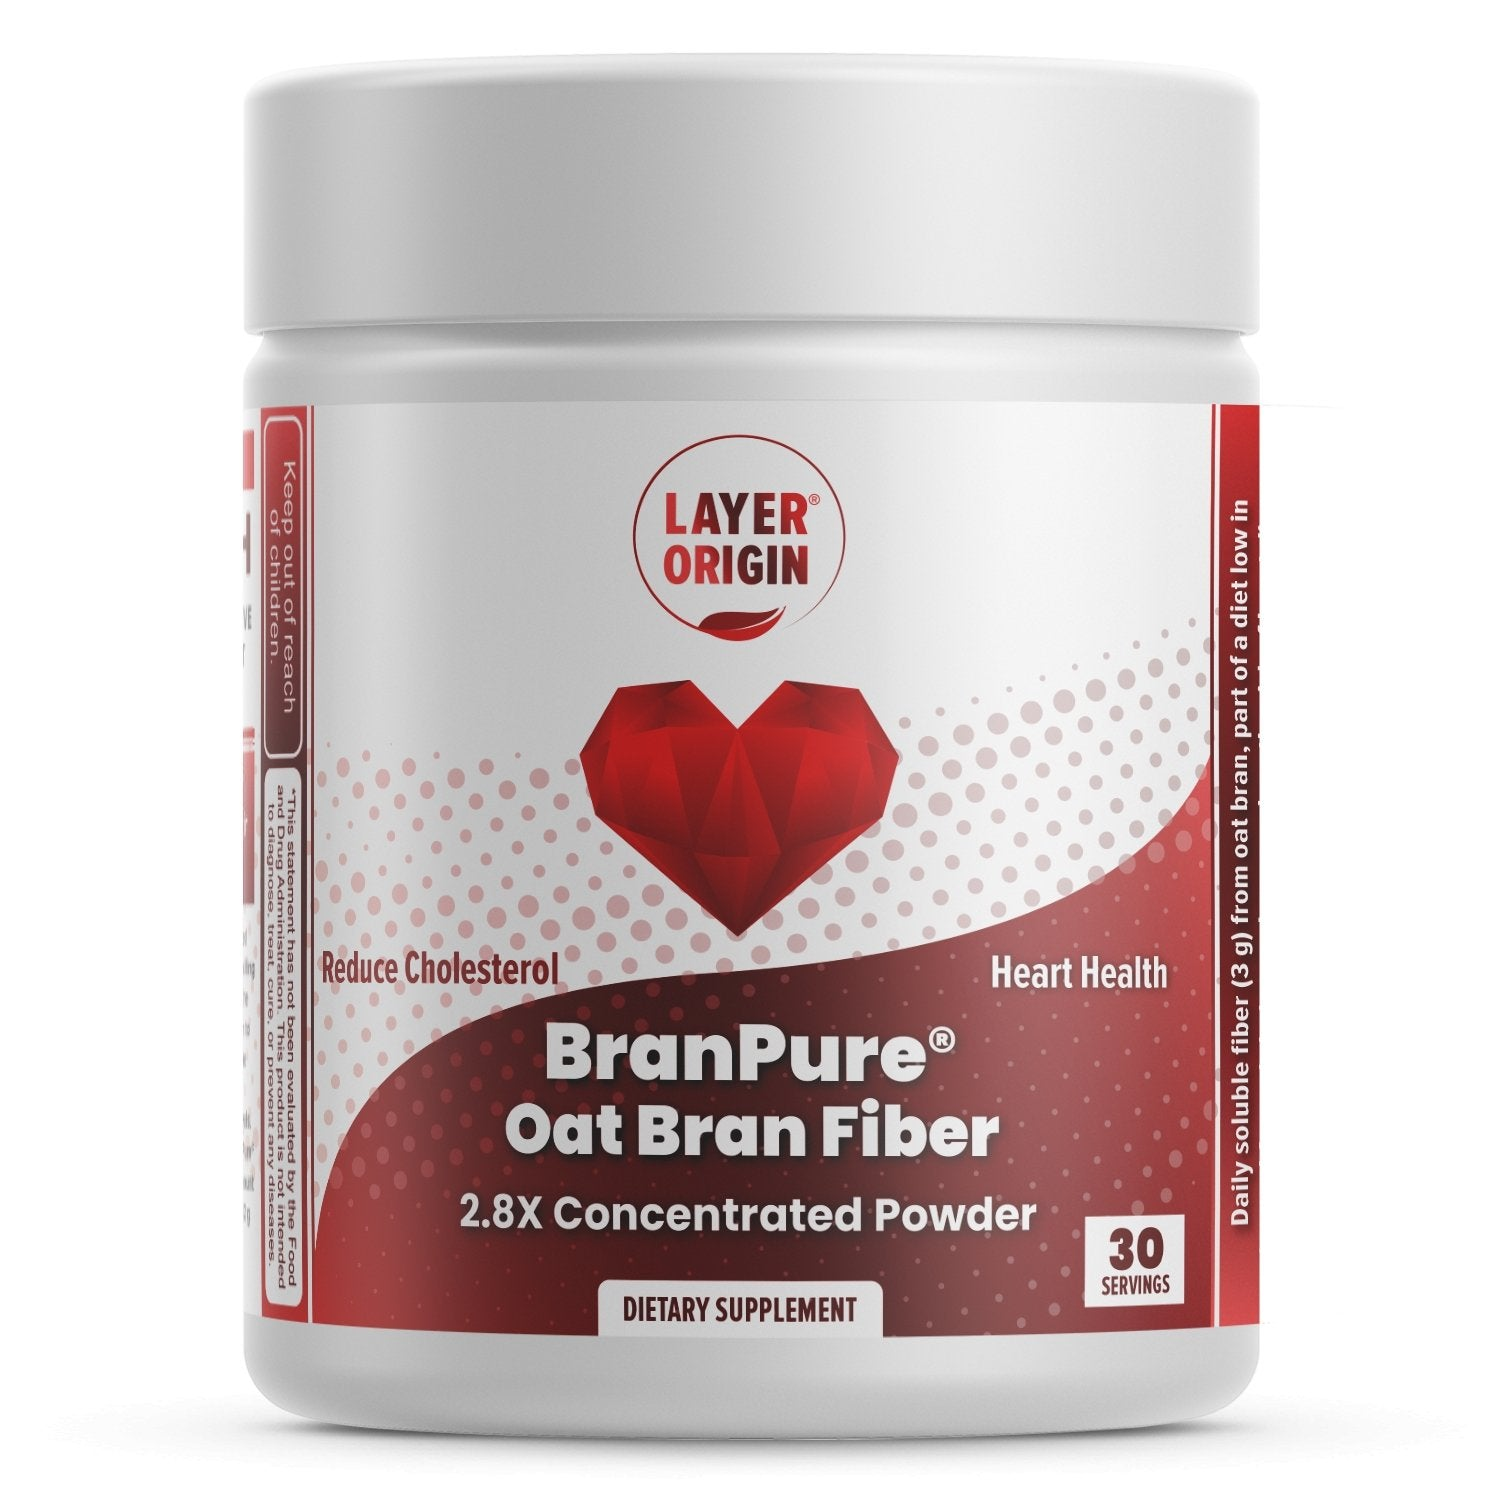 BranPure® Oat Bran Powder for Cholesterol and Heart Health - Layer Origin Nutrition